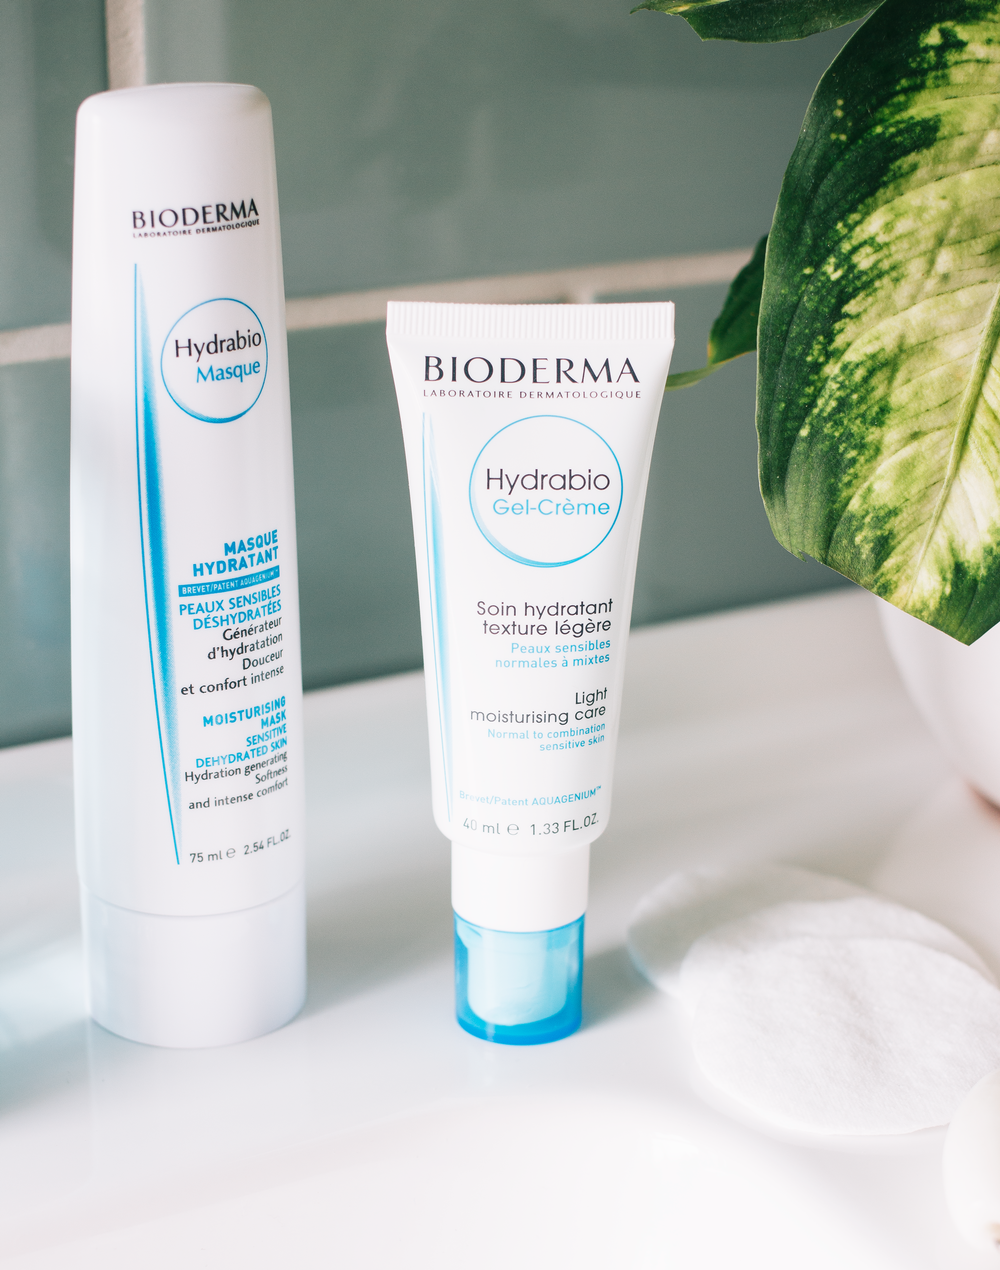 Bioderma light moisturising care* - Often when I hear the word light I worry that it won't actually leave my skin feeling hydrated for long enough which is key this season. No-one wants to get to 4pm and feel like their face is similar to the Sahara Desert. This feels beautiful on the skin, it's very light and gel-like in formulation which is something that even in the colder months I love in my moisturising products as if I am dealing with any breakouts I still want the area to feel comforted but hydrated. Naturally, you can use this either AM or PM to benefit from it but personally, I've been thoroughly enjoying this on makeup-free days used underneath an SPF to create a hydrated, protected and even base. It leaves my skin feeling soft, supple and happily nourished and is good underneath makeup too!